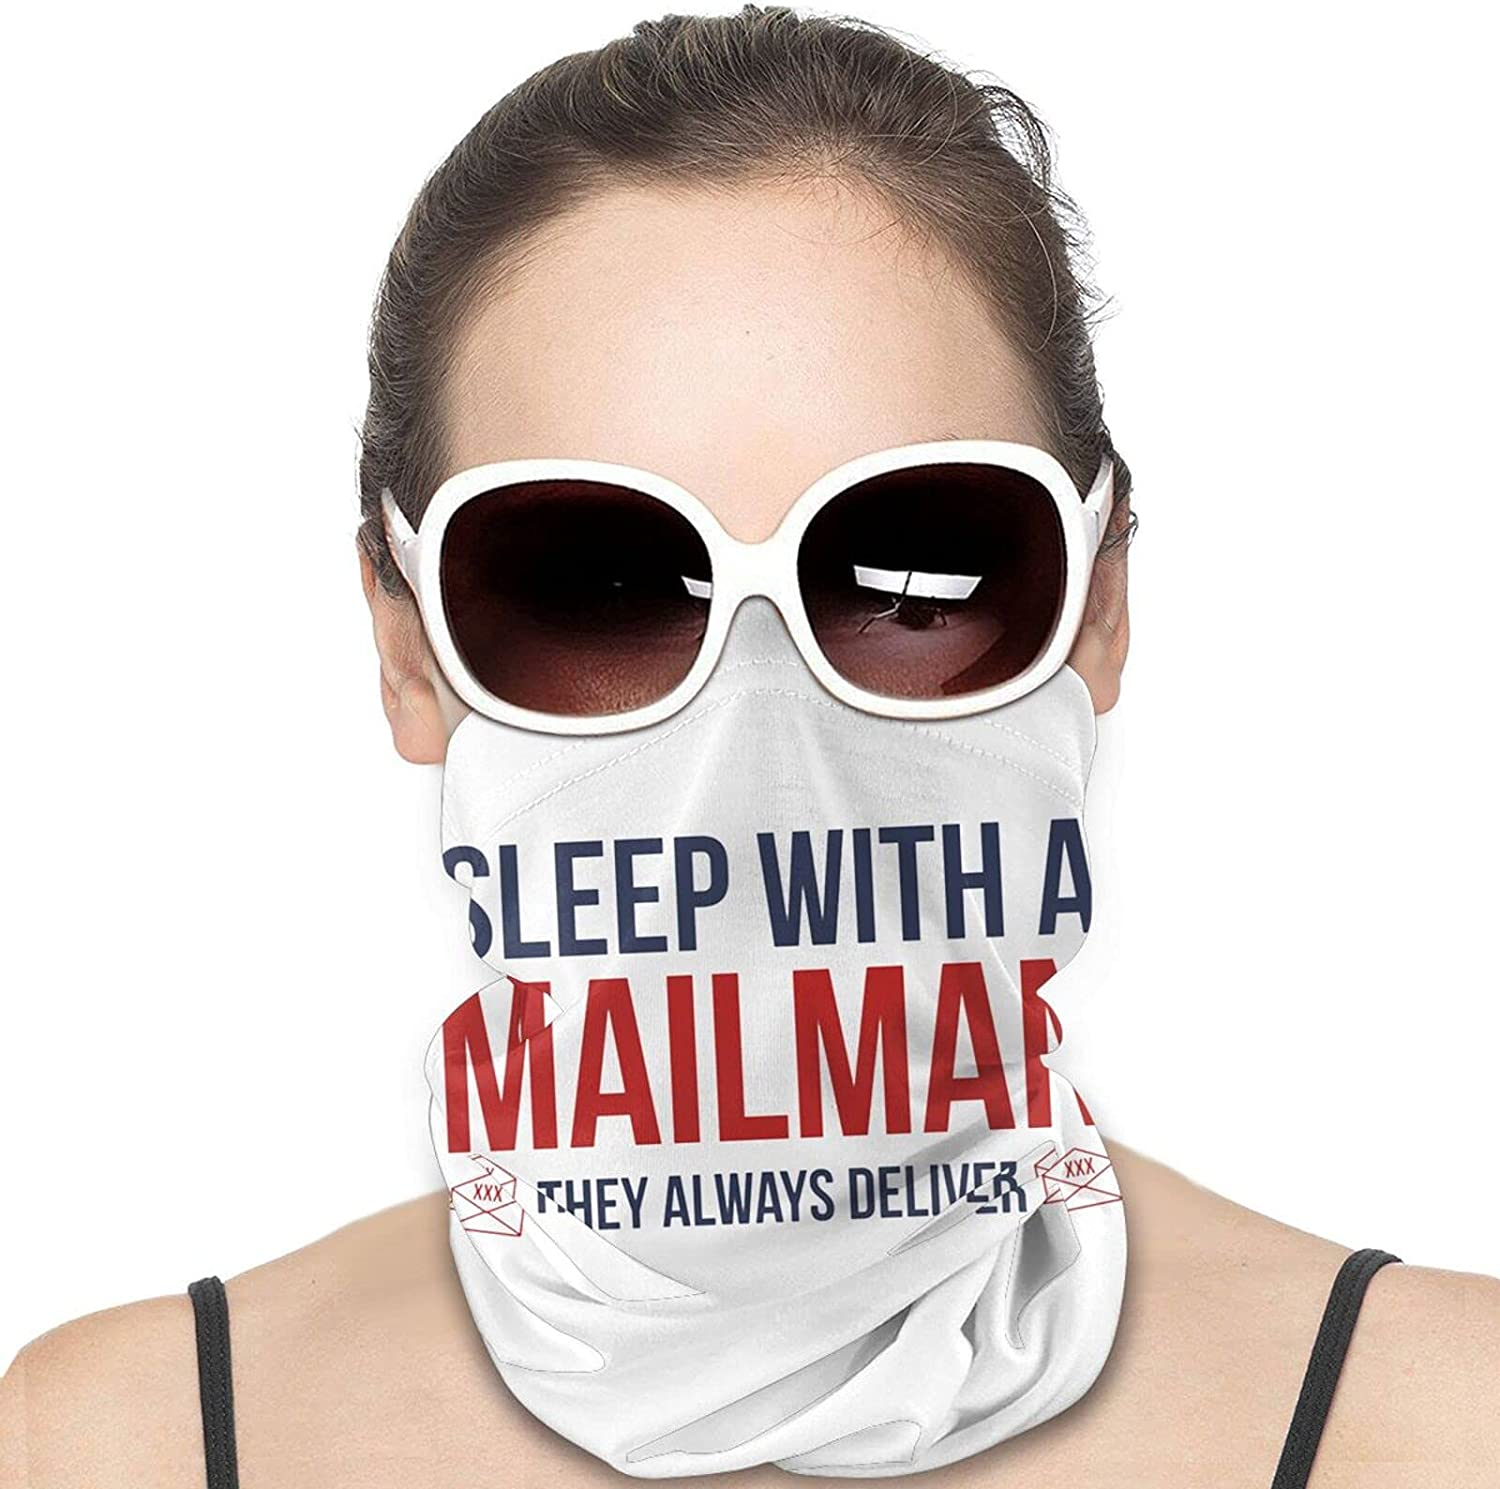 Sleep With A Mailman Round Neck Gaiter Bandnas Face Cover Uv Protection Prevent bask in Ice Scarf Headbands Perfect for Motorcycle Cycling Running Festival Raves Outdoors